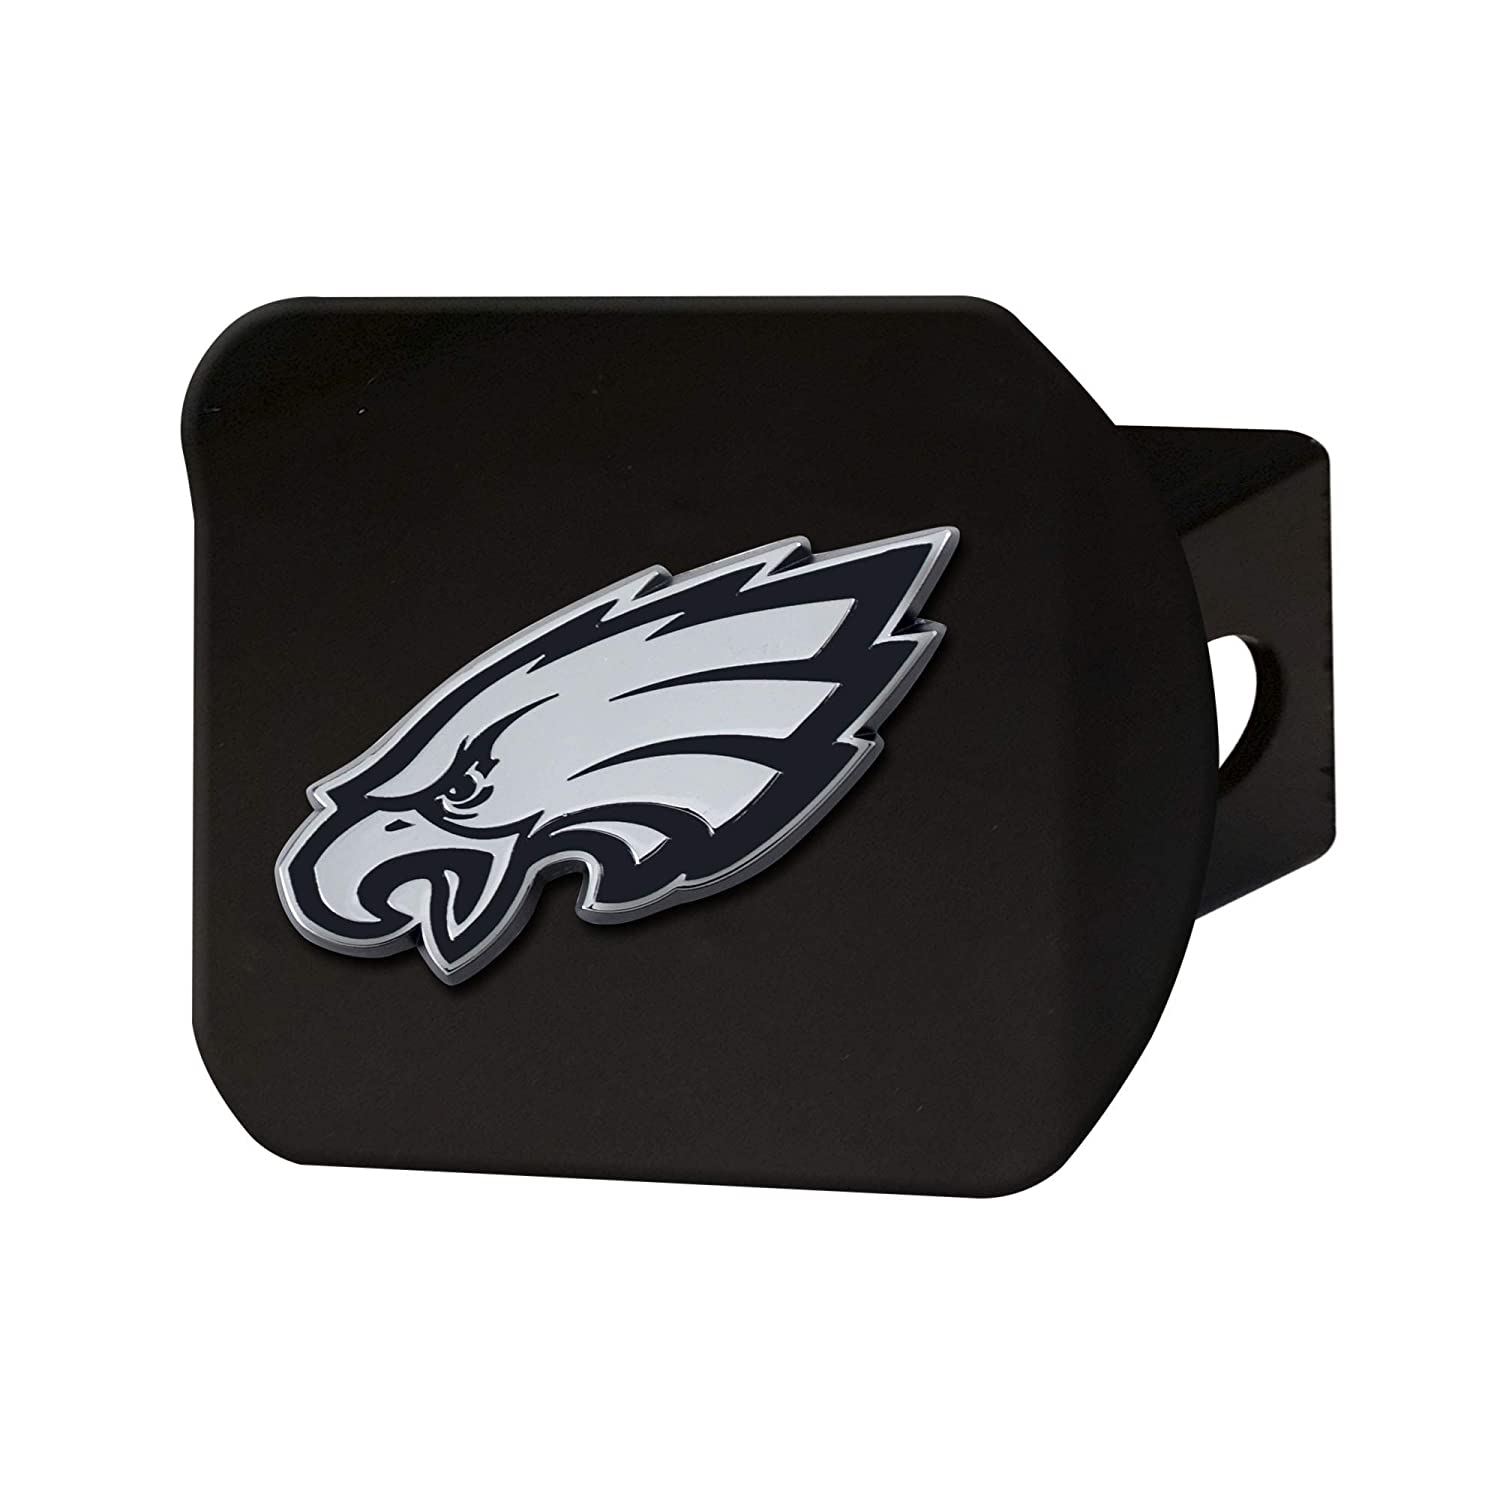 Philadelphia Eagles Black 2 Square Type III Metal Hitch Cover with 3D Chrome Emblem FANMATS 21573 NFL